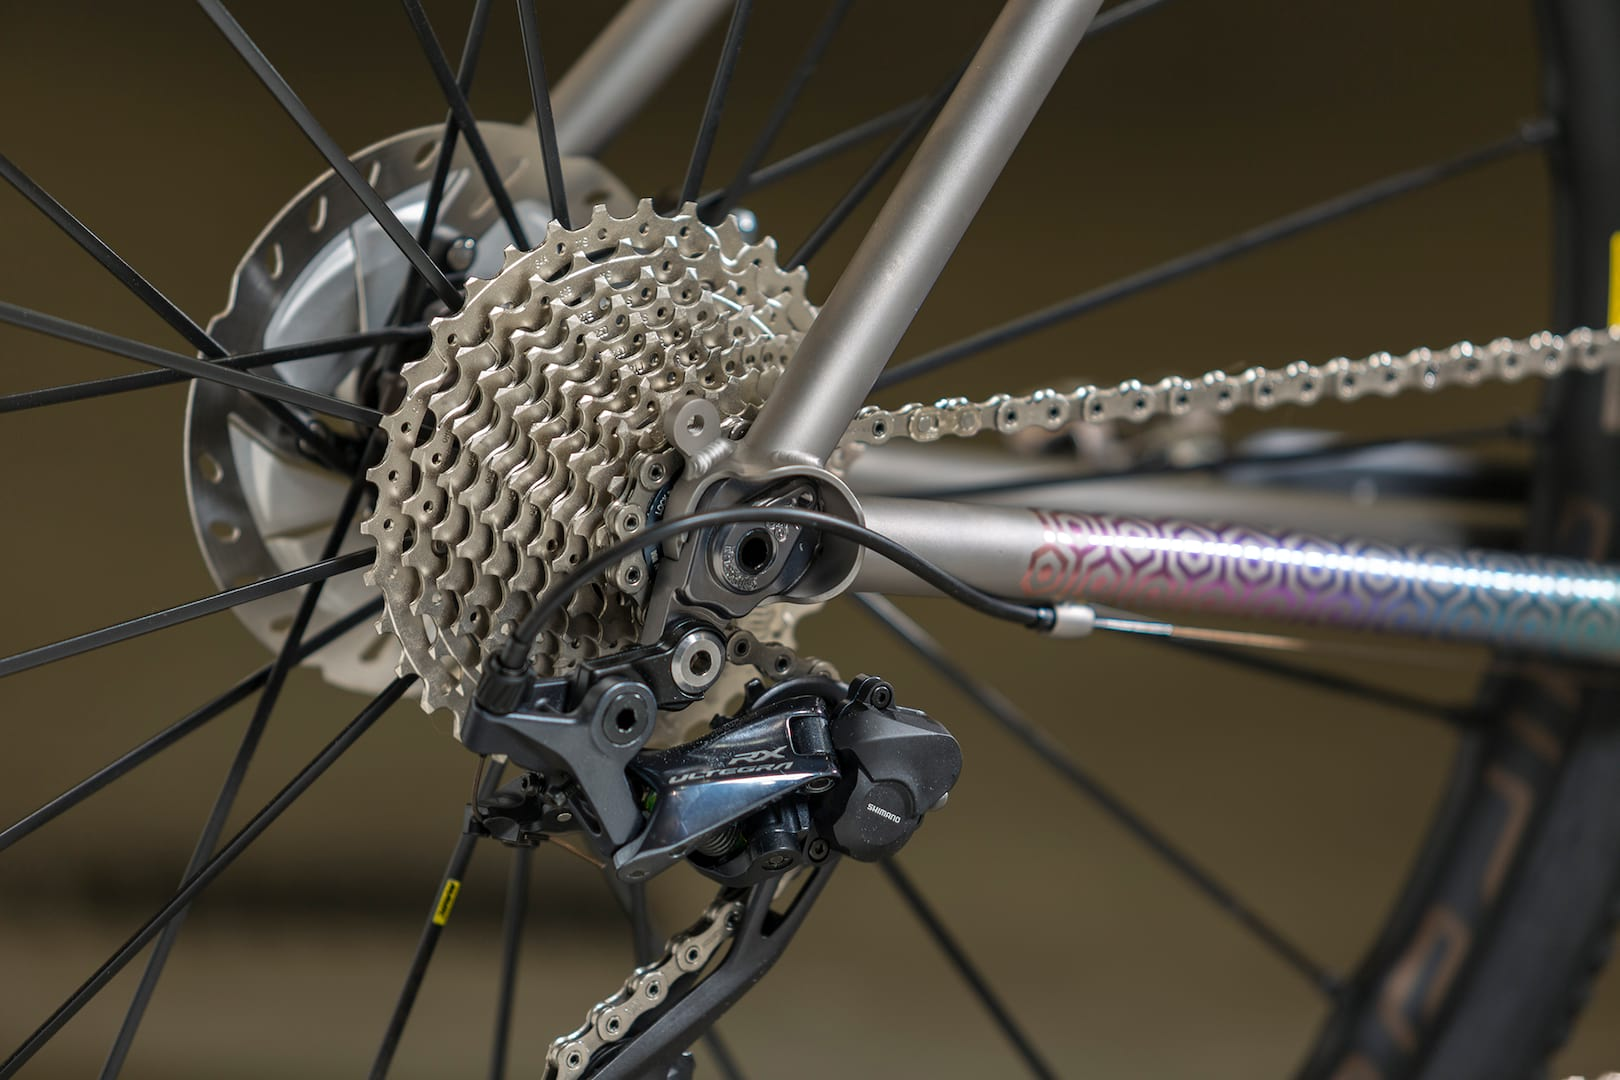 Friday bike lust: The new Moots Routt YBB revisits the